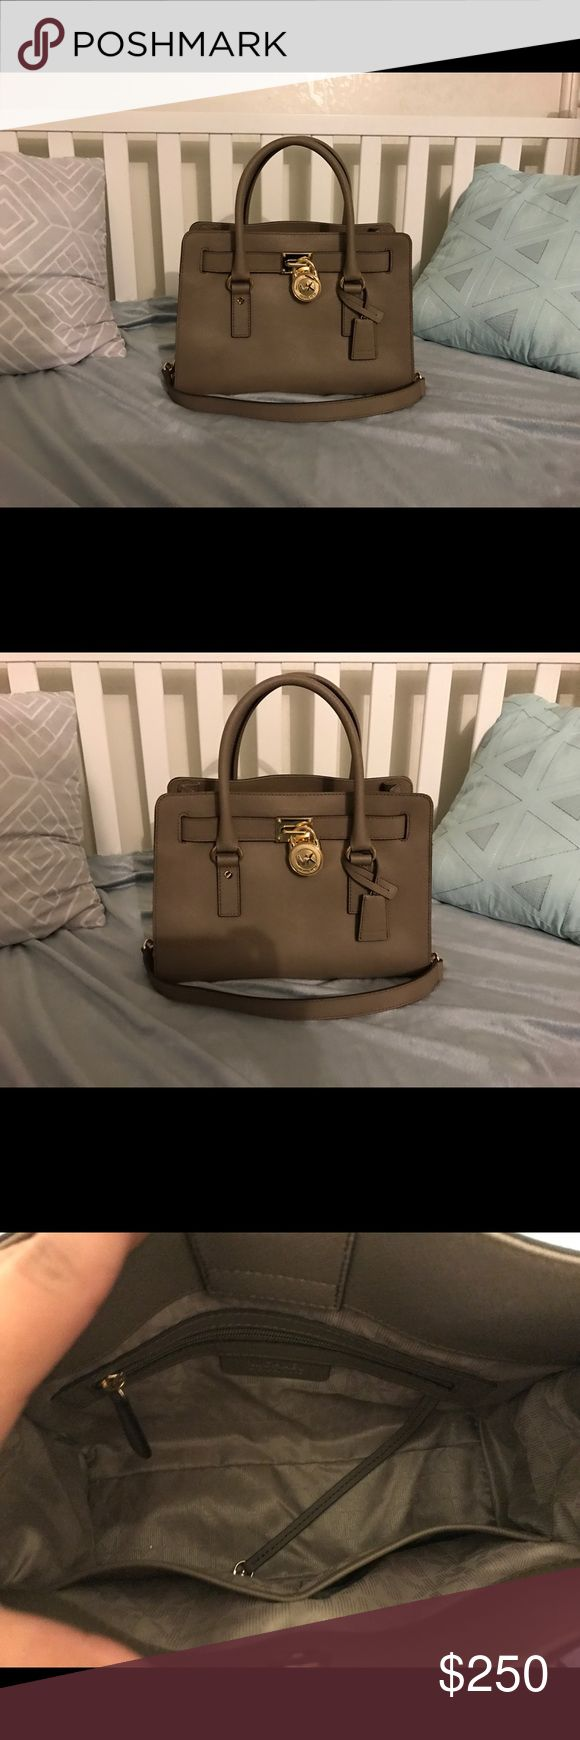 Authentic Michael kors purse sale Yes this is authentic comes with duster bag it is an amazing bag detailed with gold only worn once it is almost like new no flaws on sale today only limited time 💕💕💕 final price no low balling this is the cheapest and newest on Poshmark for this price Michael Kors Bags Crossbody Bags